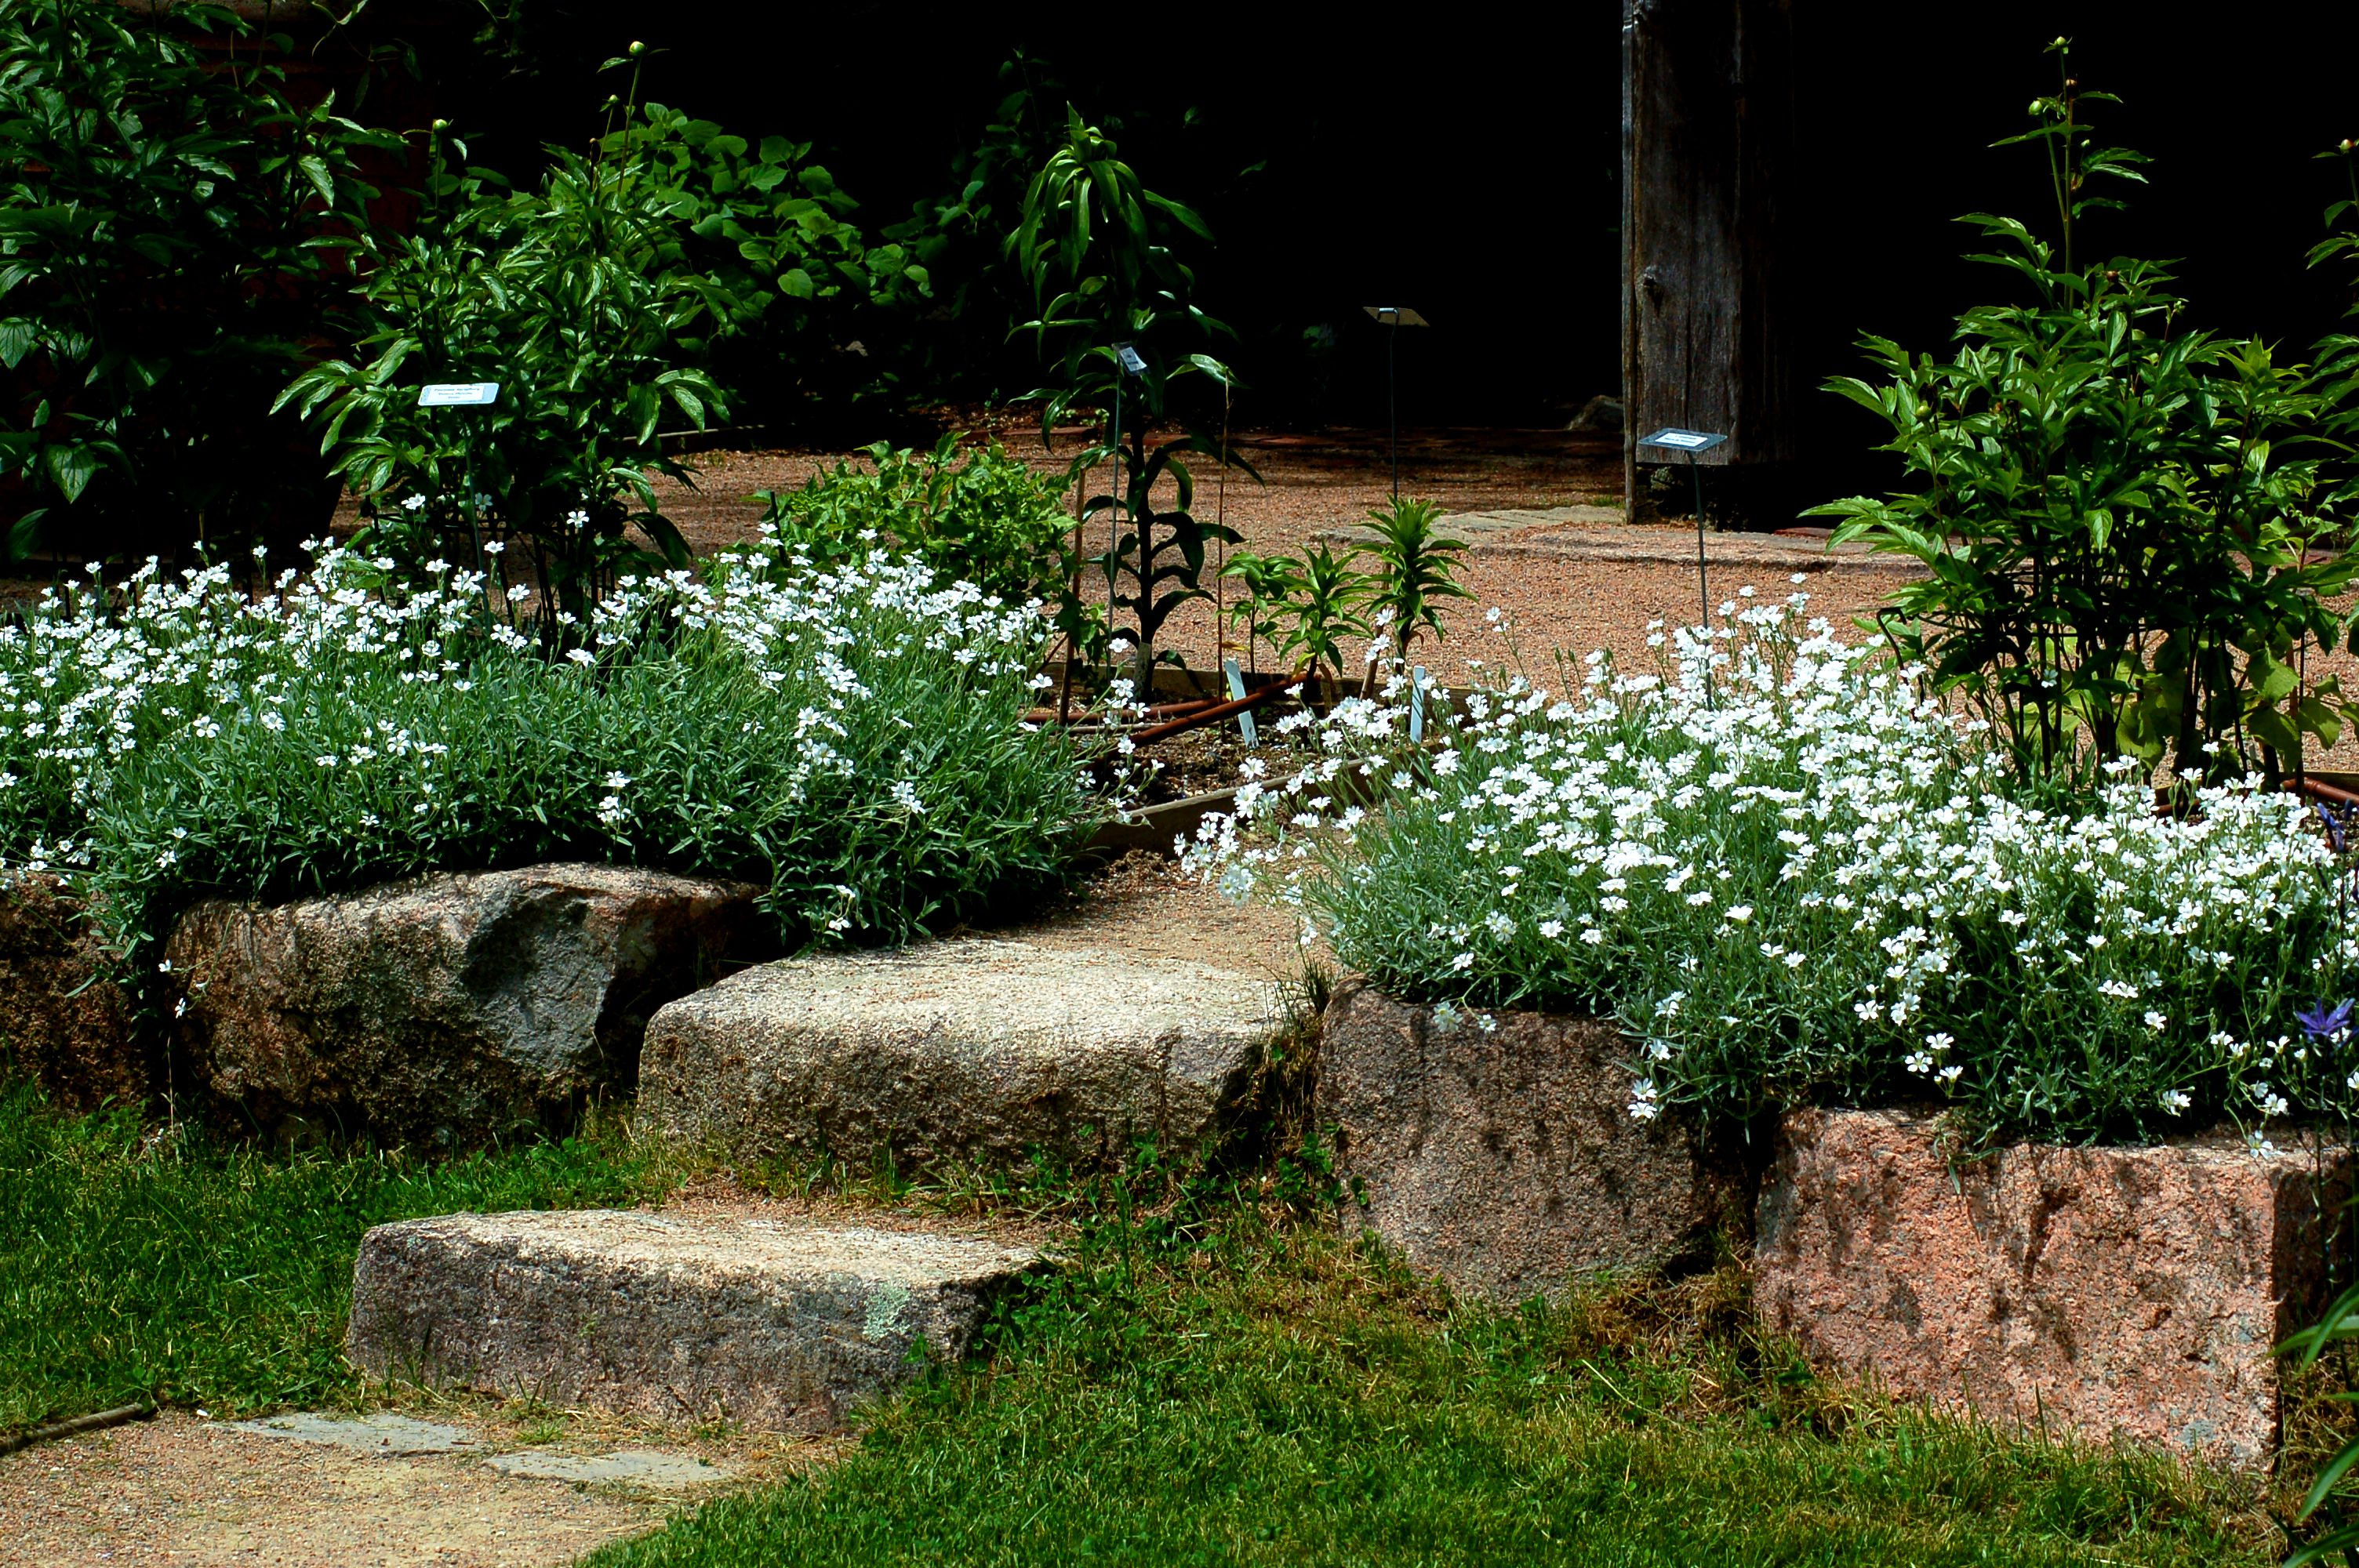 Snow-in-summer flowers spilling over stone wall.